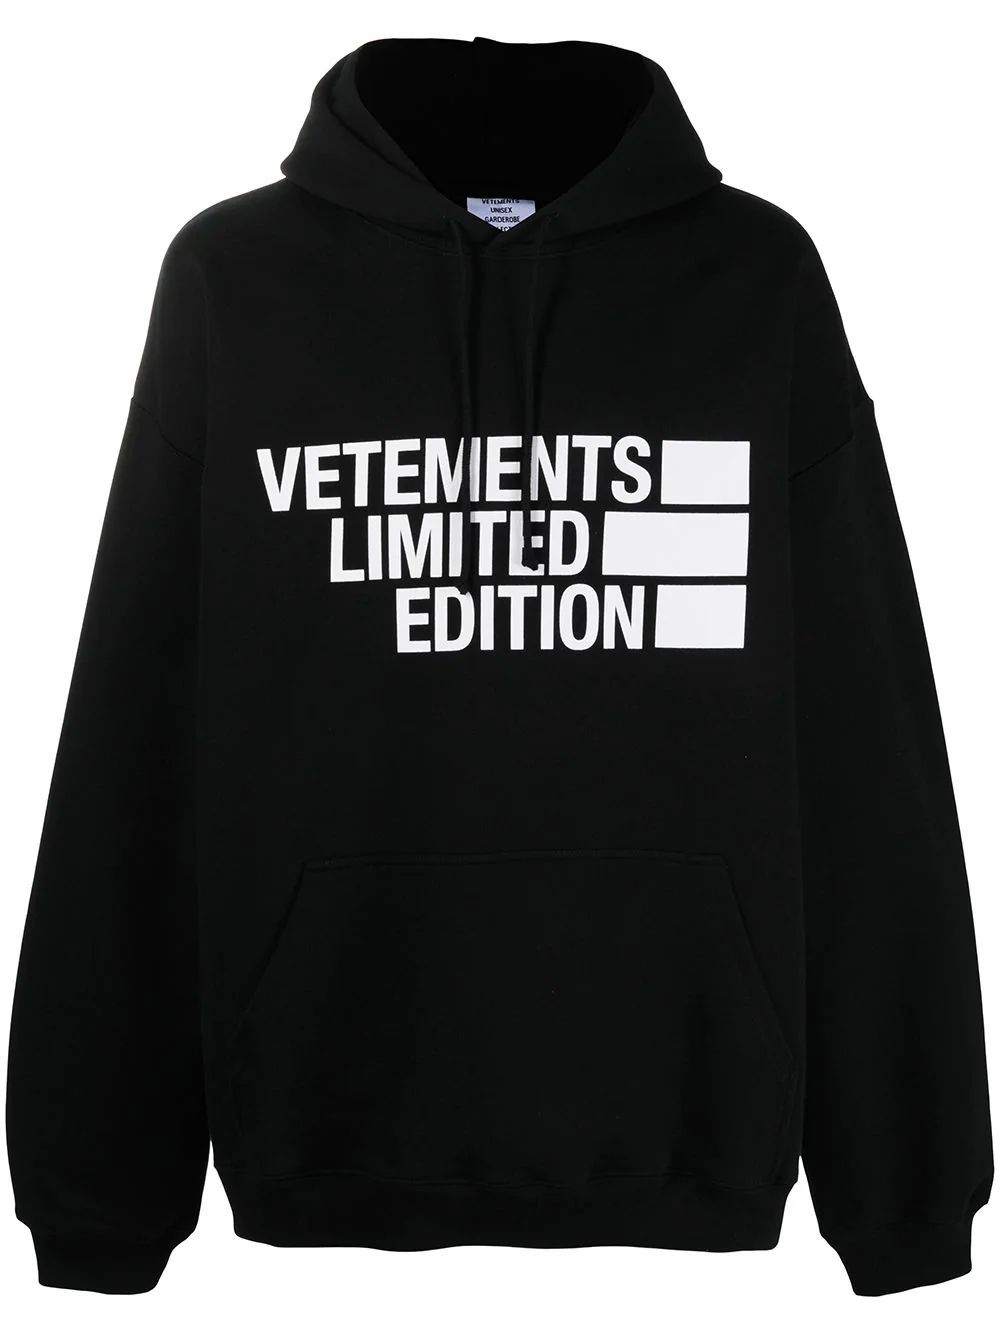 Vetements VETEMENTS MEN'S BLACK COTTON SWEATSHIRT